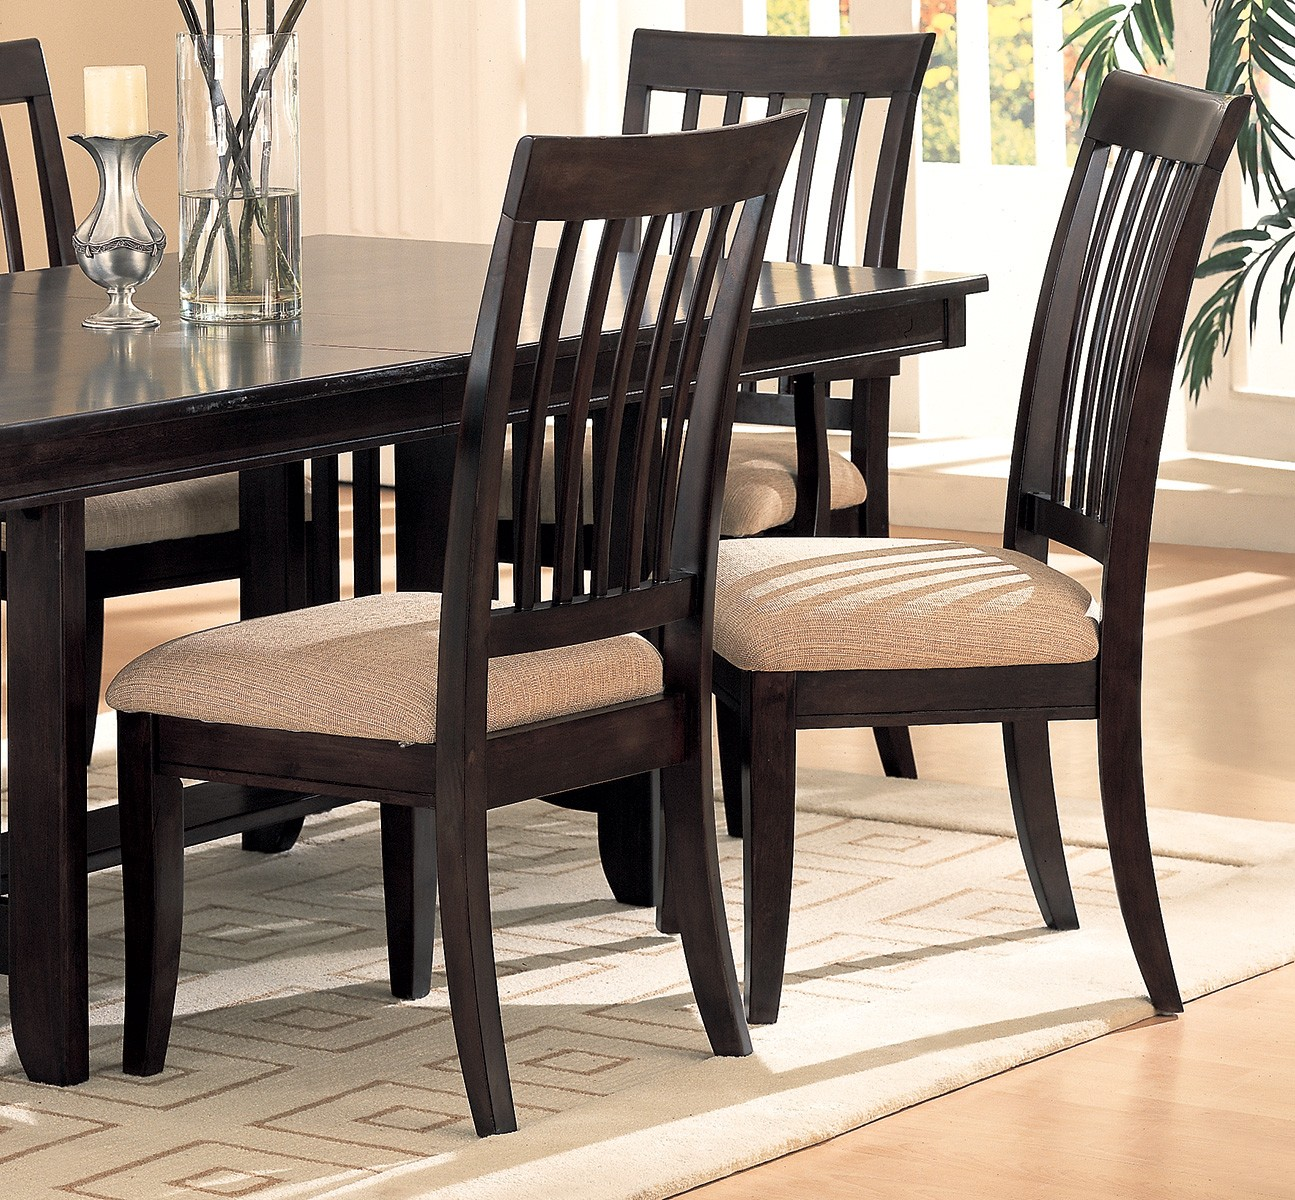 Furniture gt Dining Room furniture gt Dining Chair gt Mission  : CO 100182 from furniturevisit.org size 1295 x 1200 jpeg 502kB